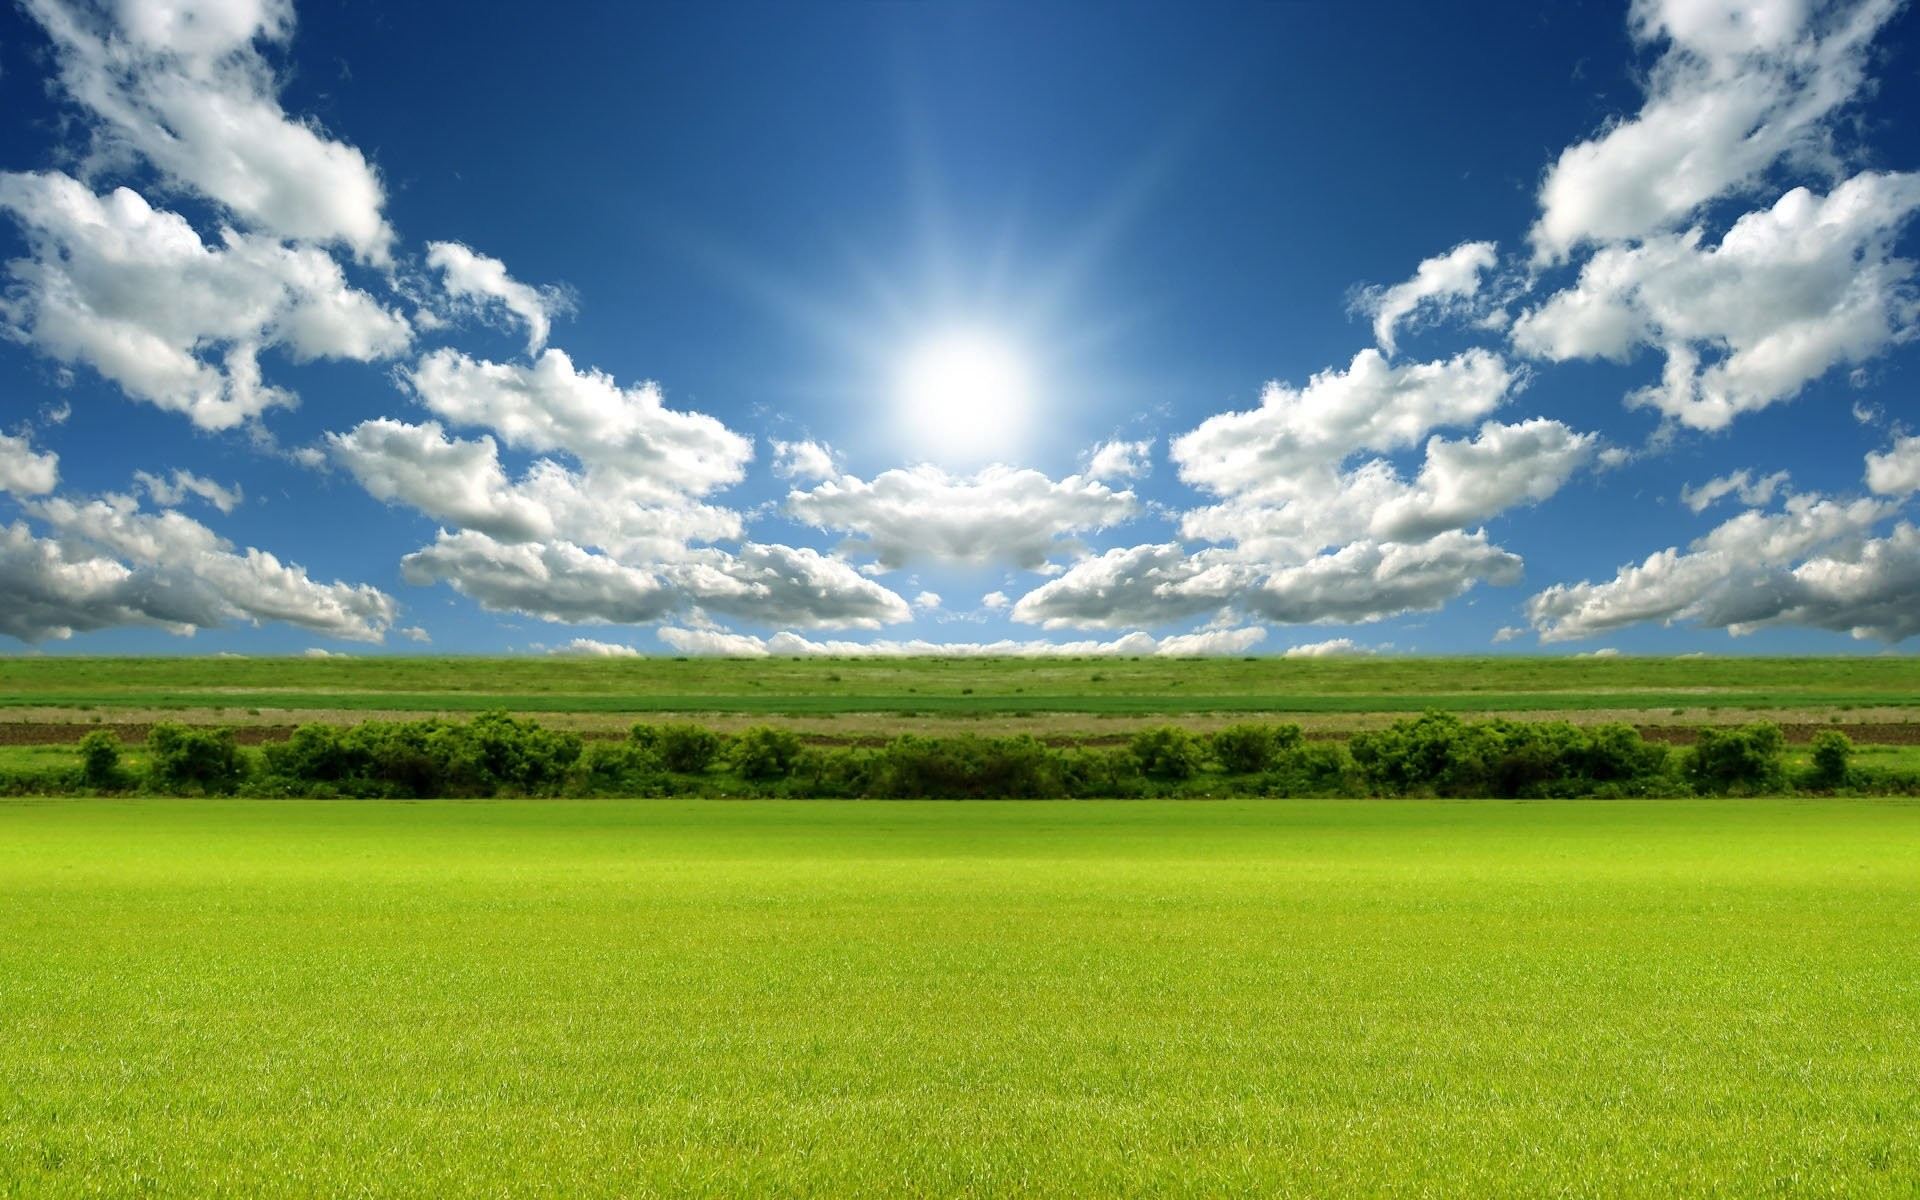 Sunny Day Wallpaper 59 Images